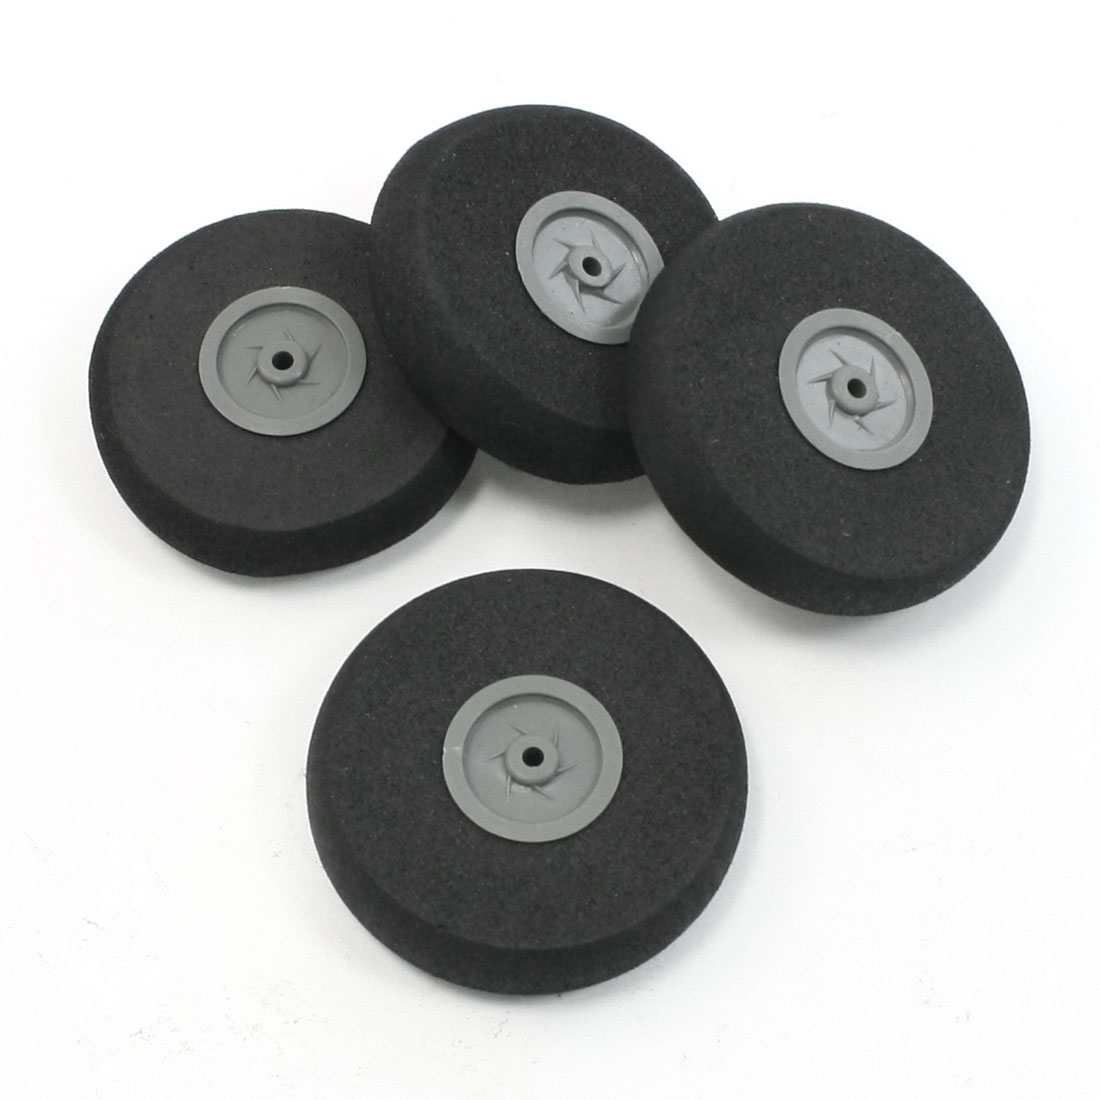 4PCS RC DIY Plane Model Airplane Repair Plastic Hub Black Foam Wheel 40mm